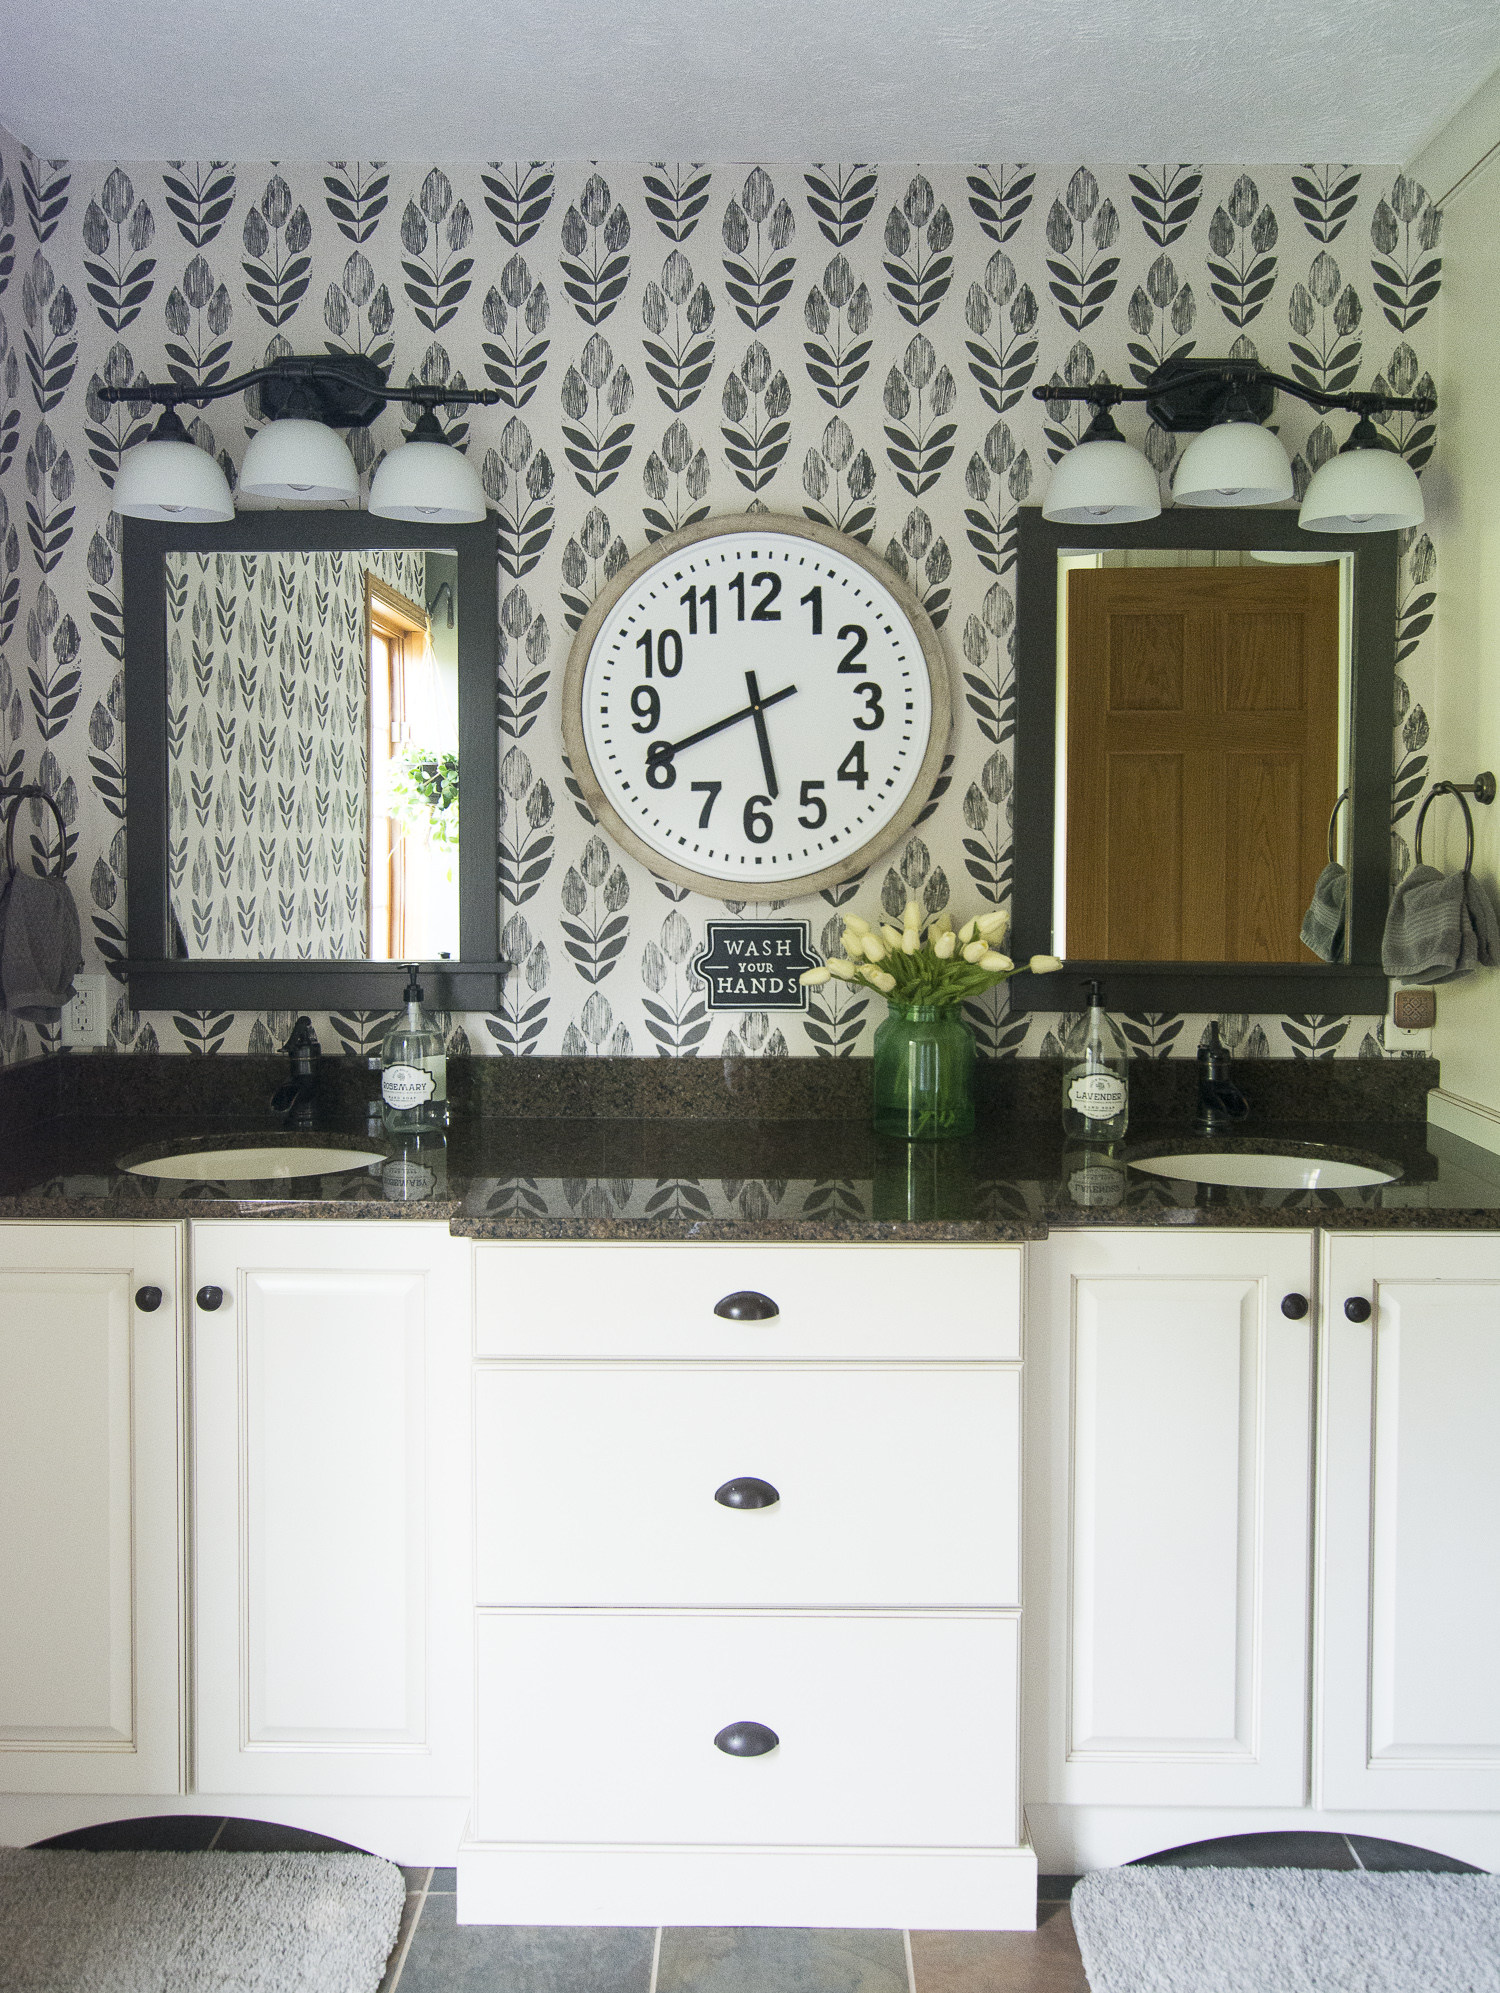 Black and white wallpaper is a statement in this bathroom kellyelko.com #bathroom #wallpaper #bathroomdecor #bathroomreno #interiordesign #blackandwhitedecor